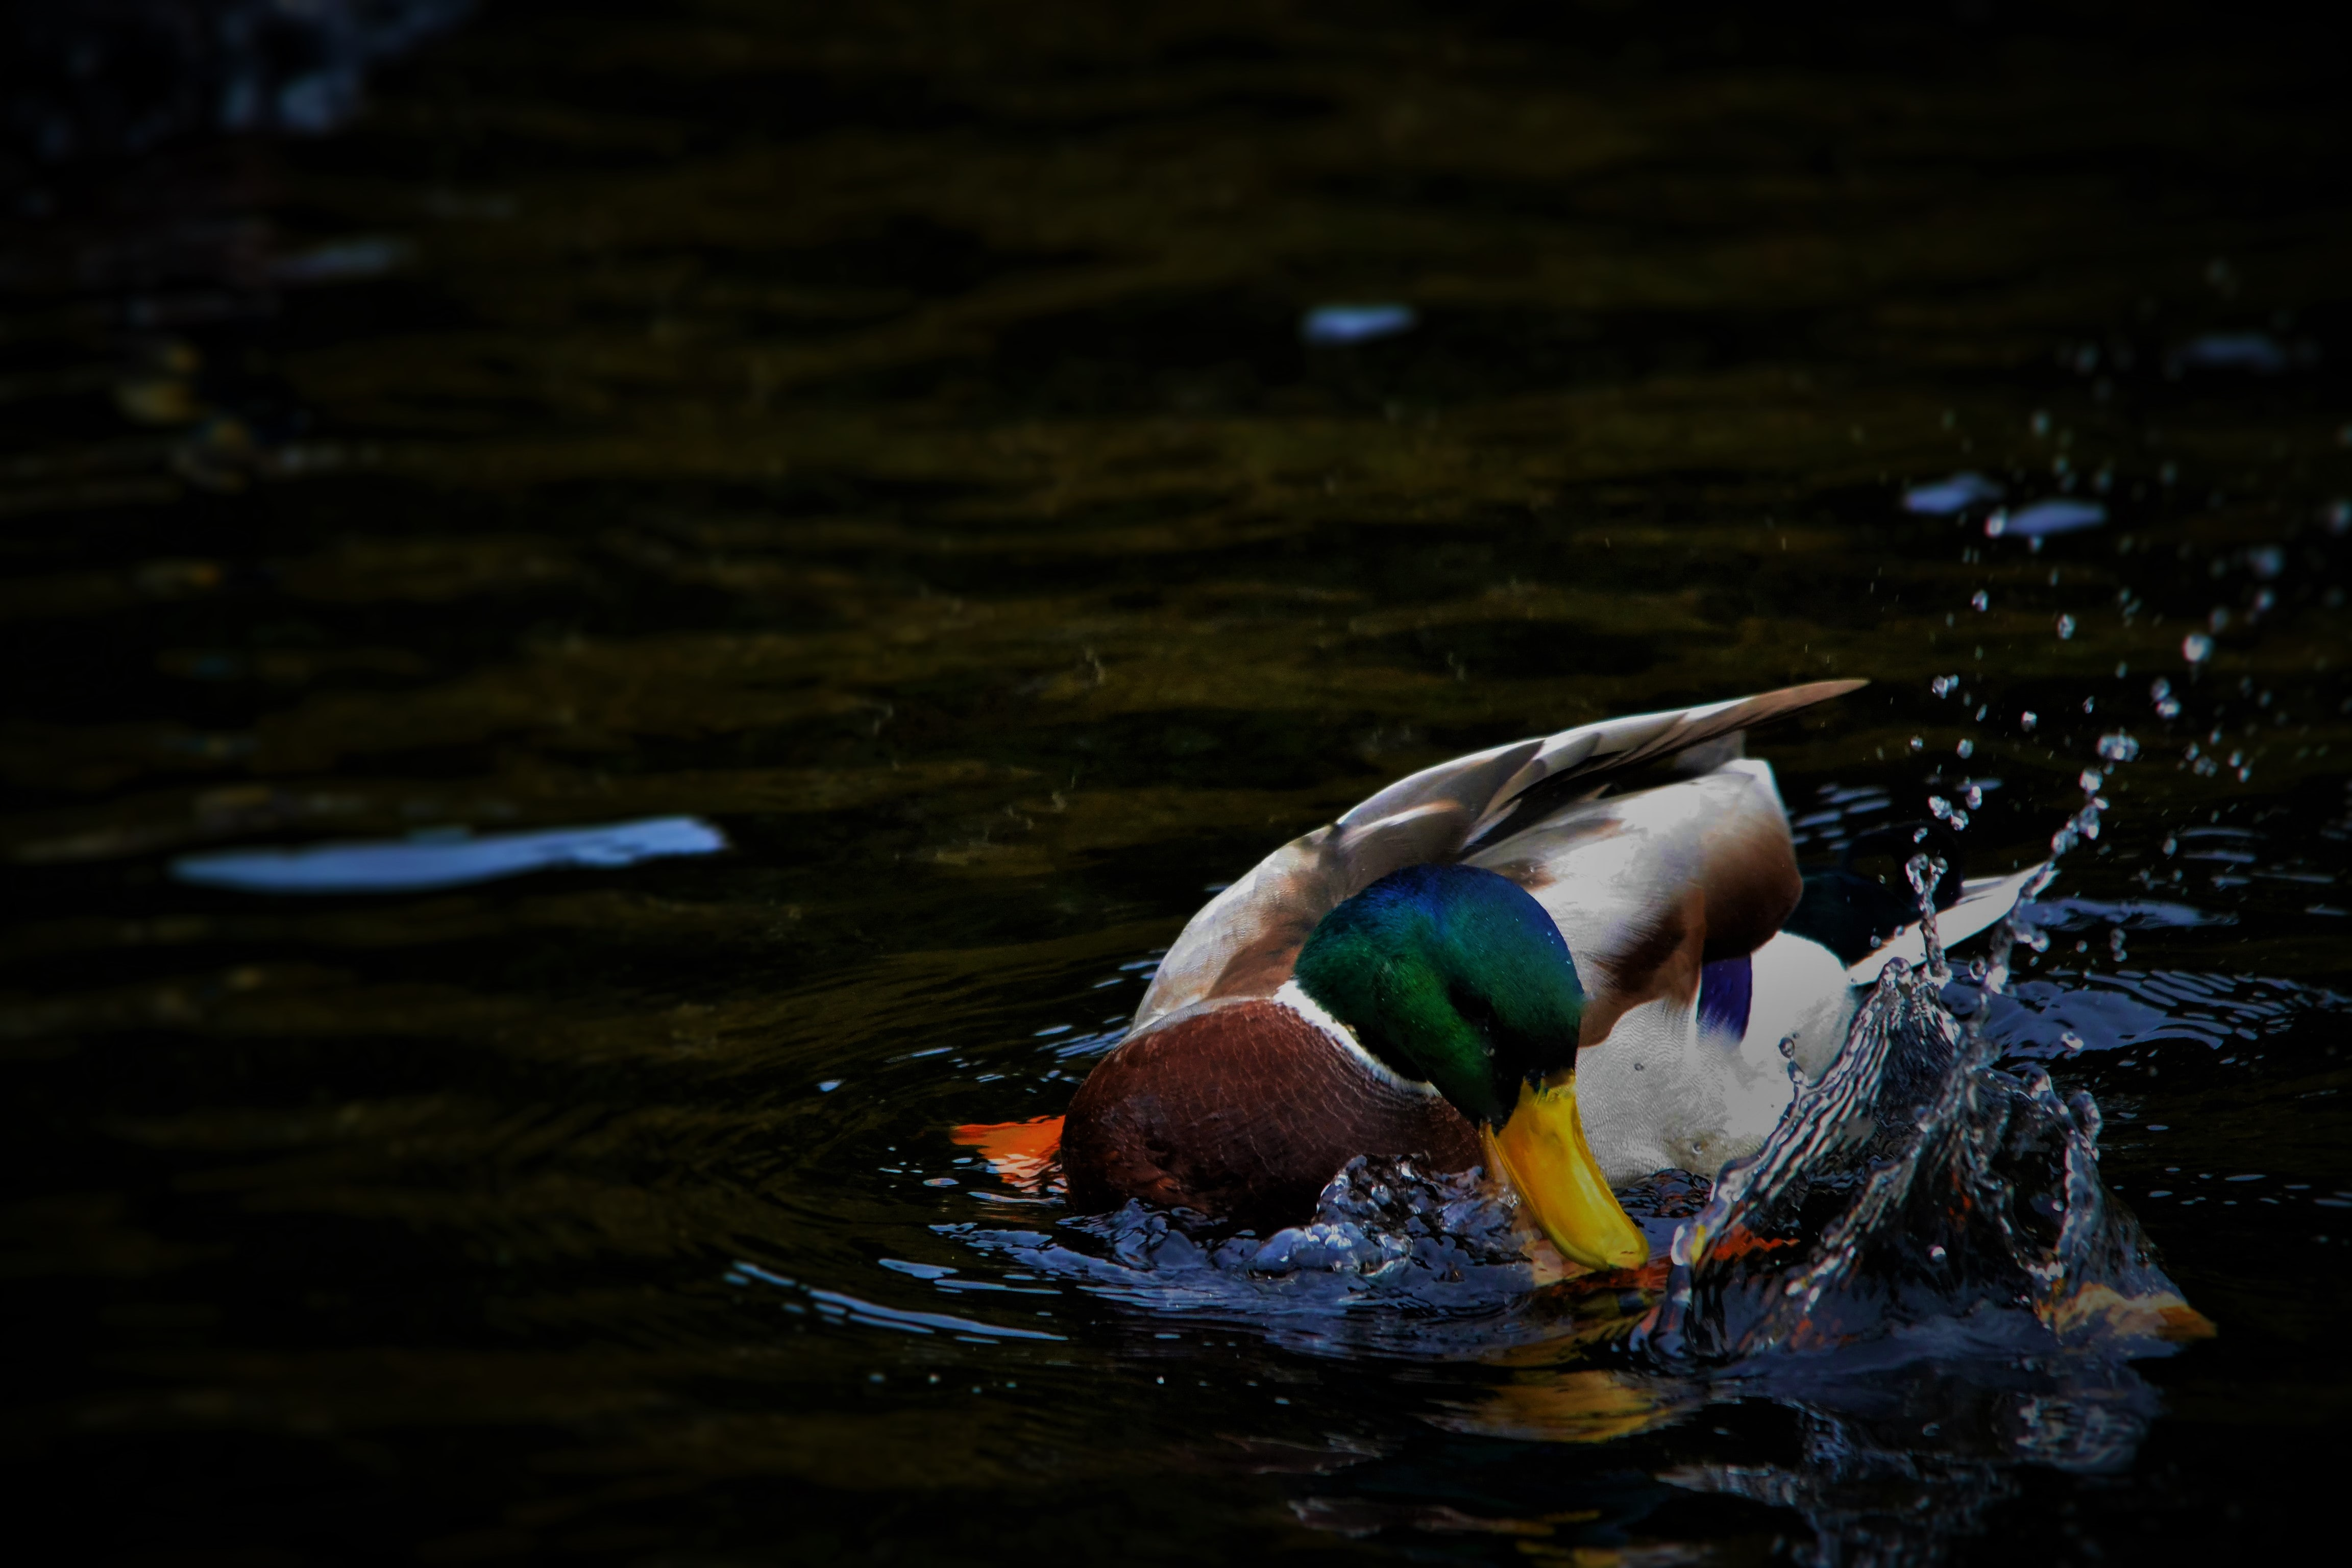 A duck eats a fish in a pond